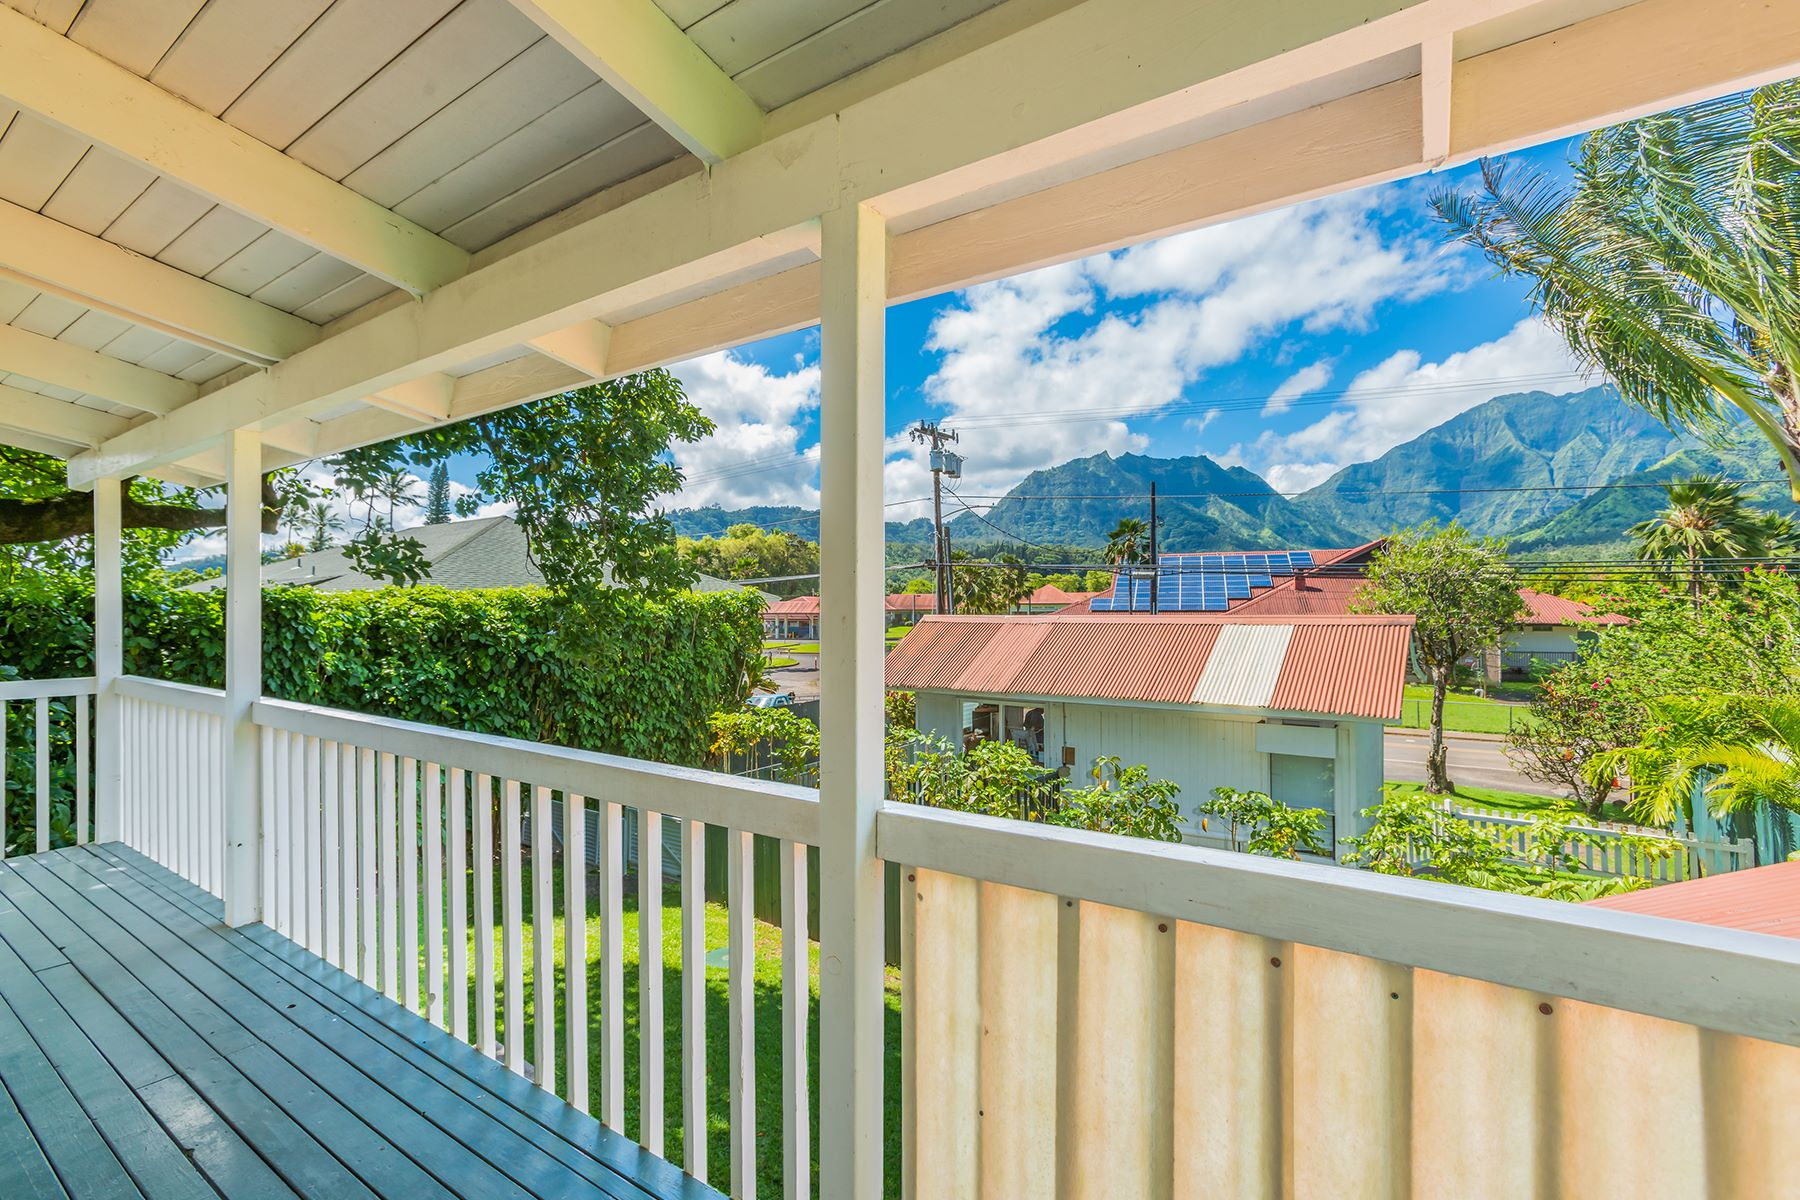 Single Family Home for Active at Hanalei Waterfalls 5-5428 Kuhio Highway #A & #B Hanalei, Hawaii 96714 United States